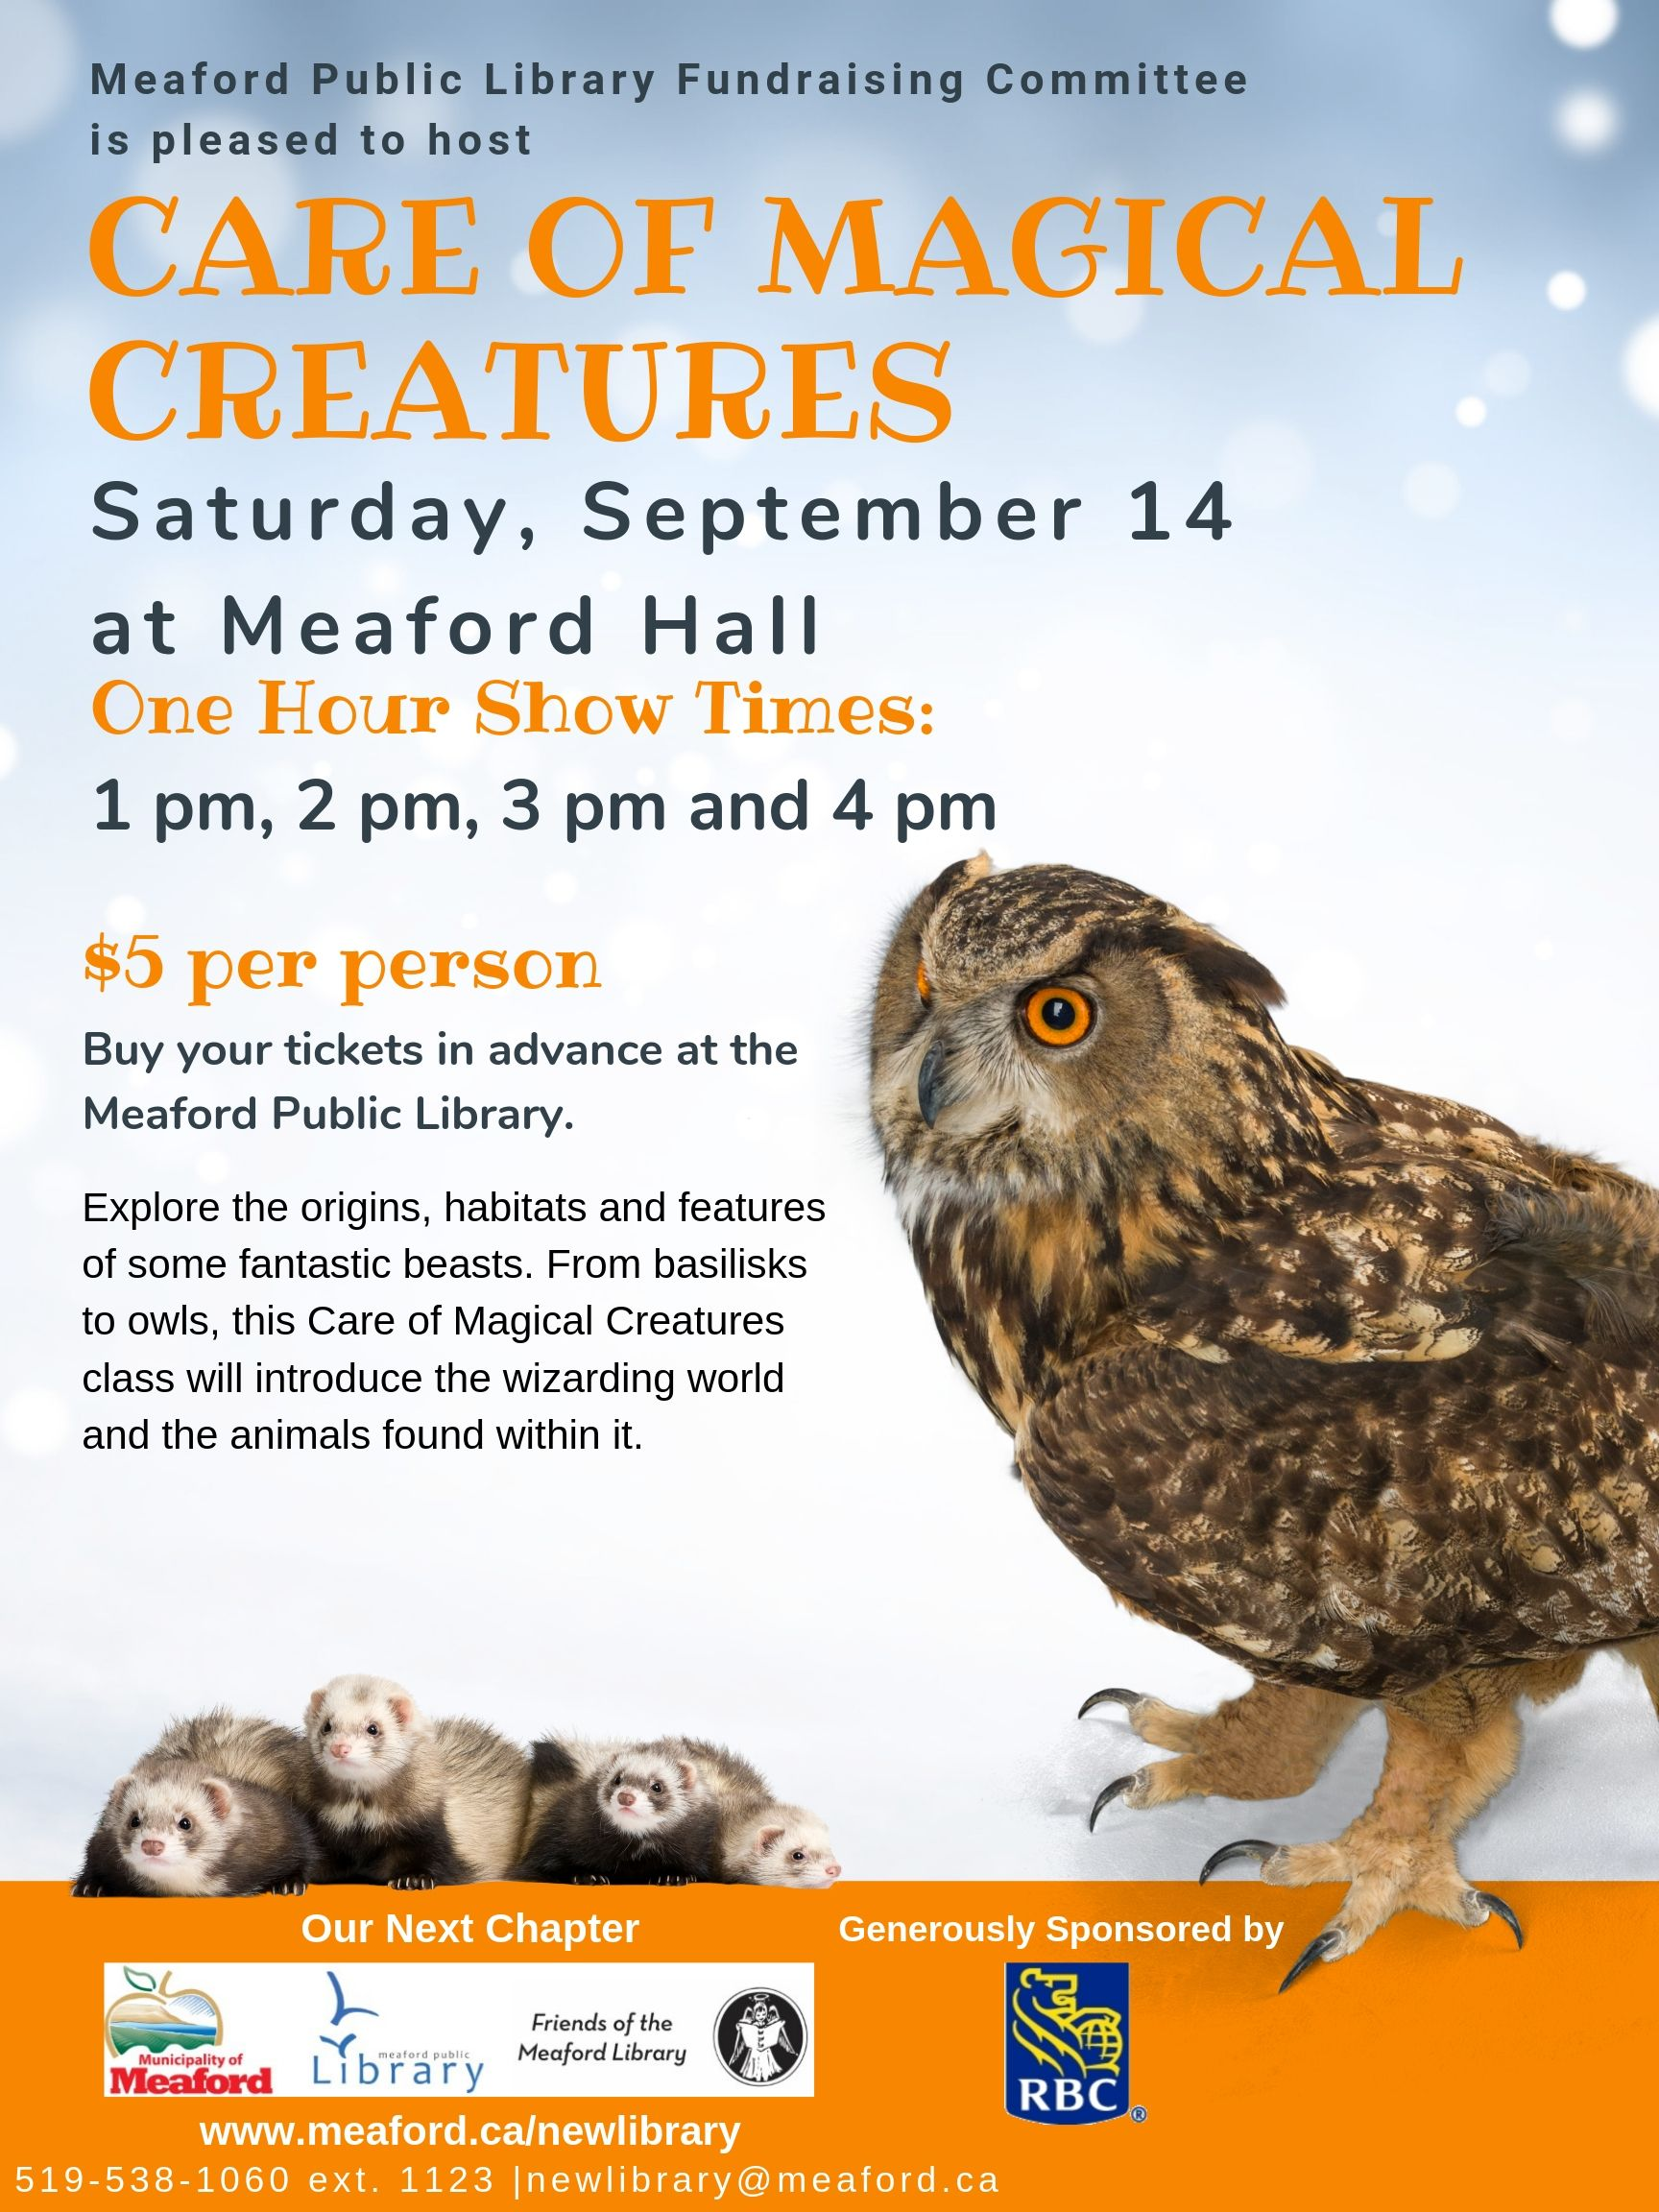 Care of Magical Creatures poster with Owl